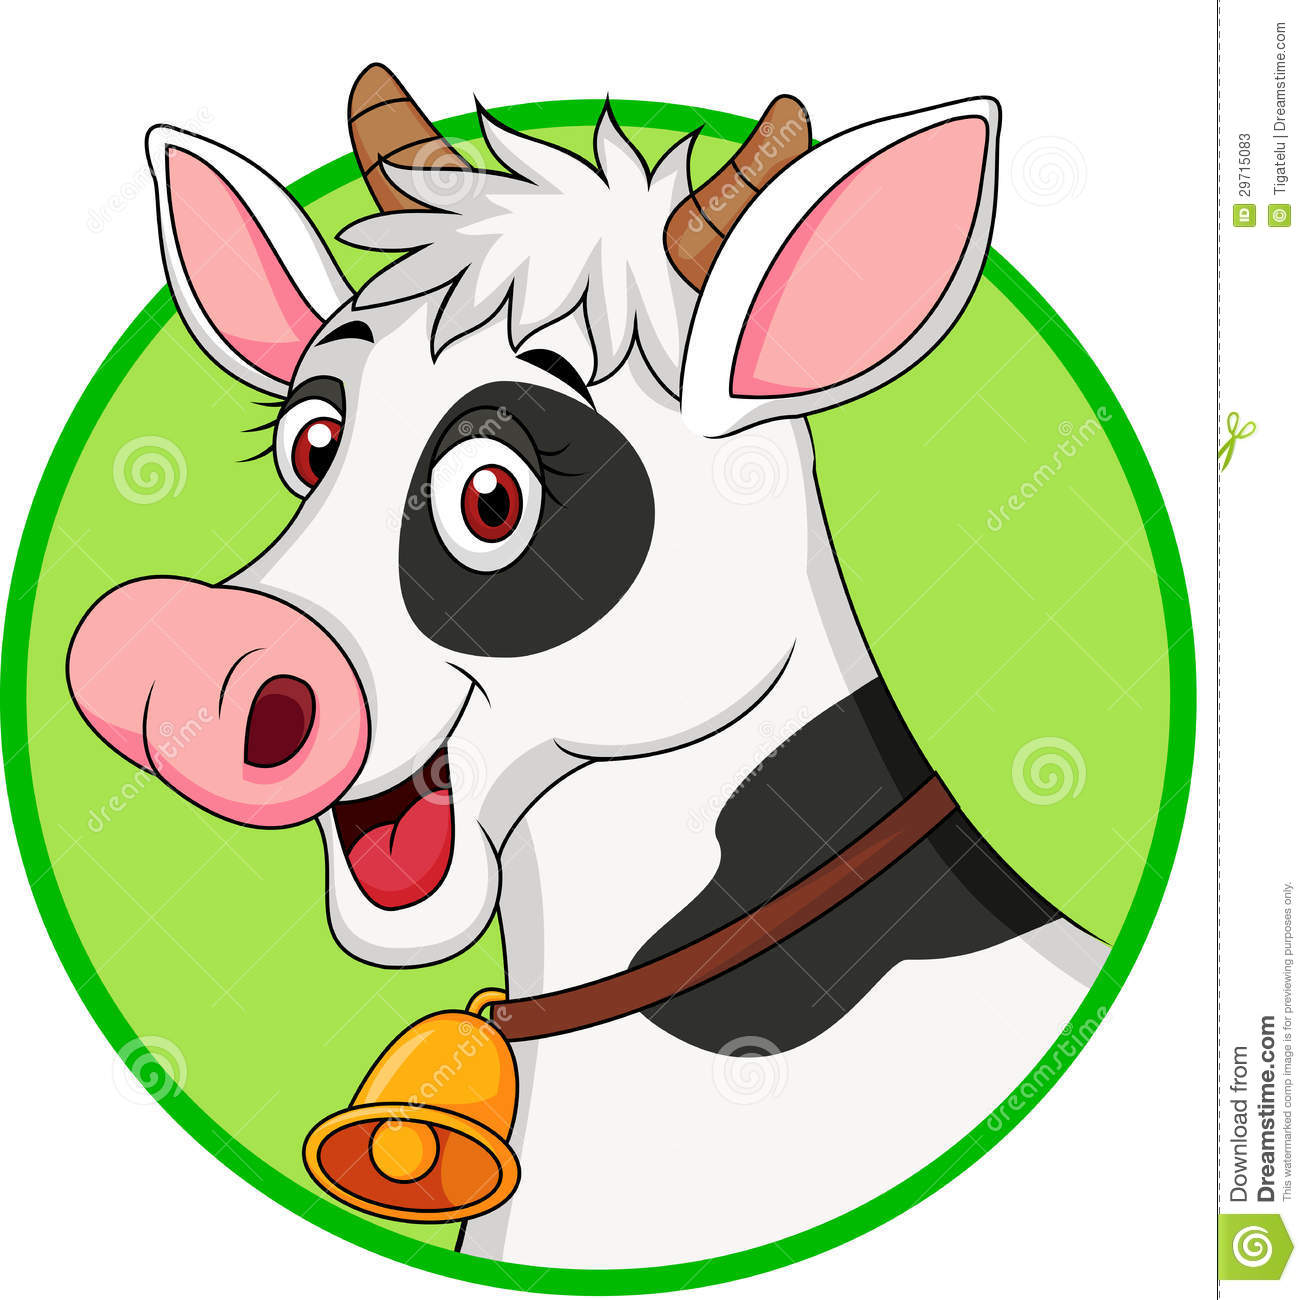 Cute Cow Cartoon Stock Vector. Illustration Of Cute